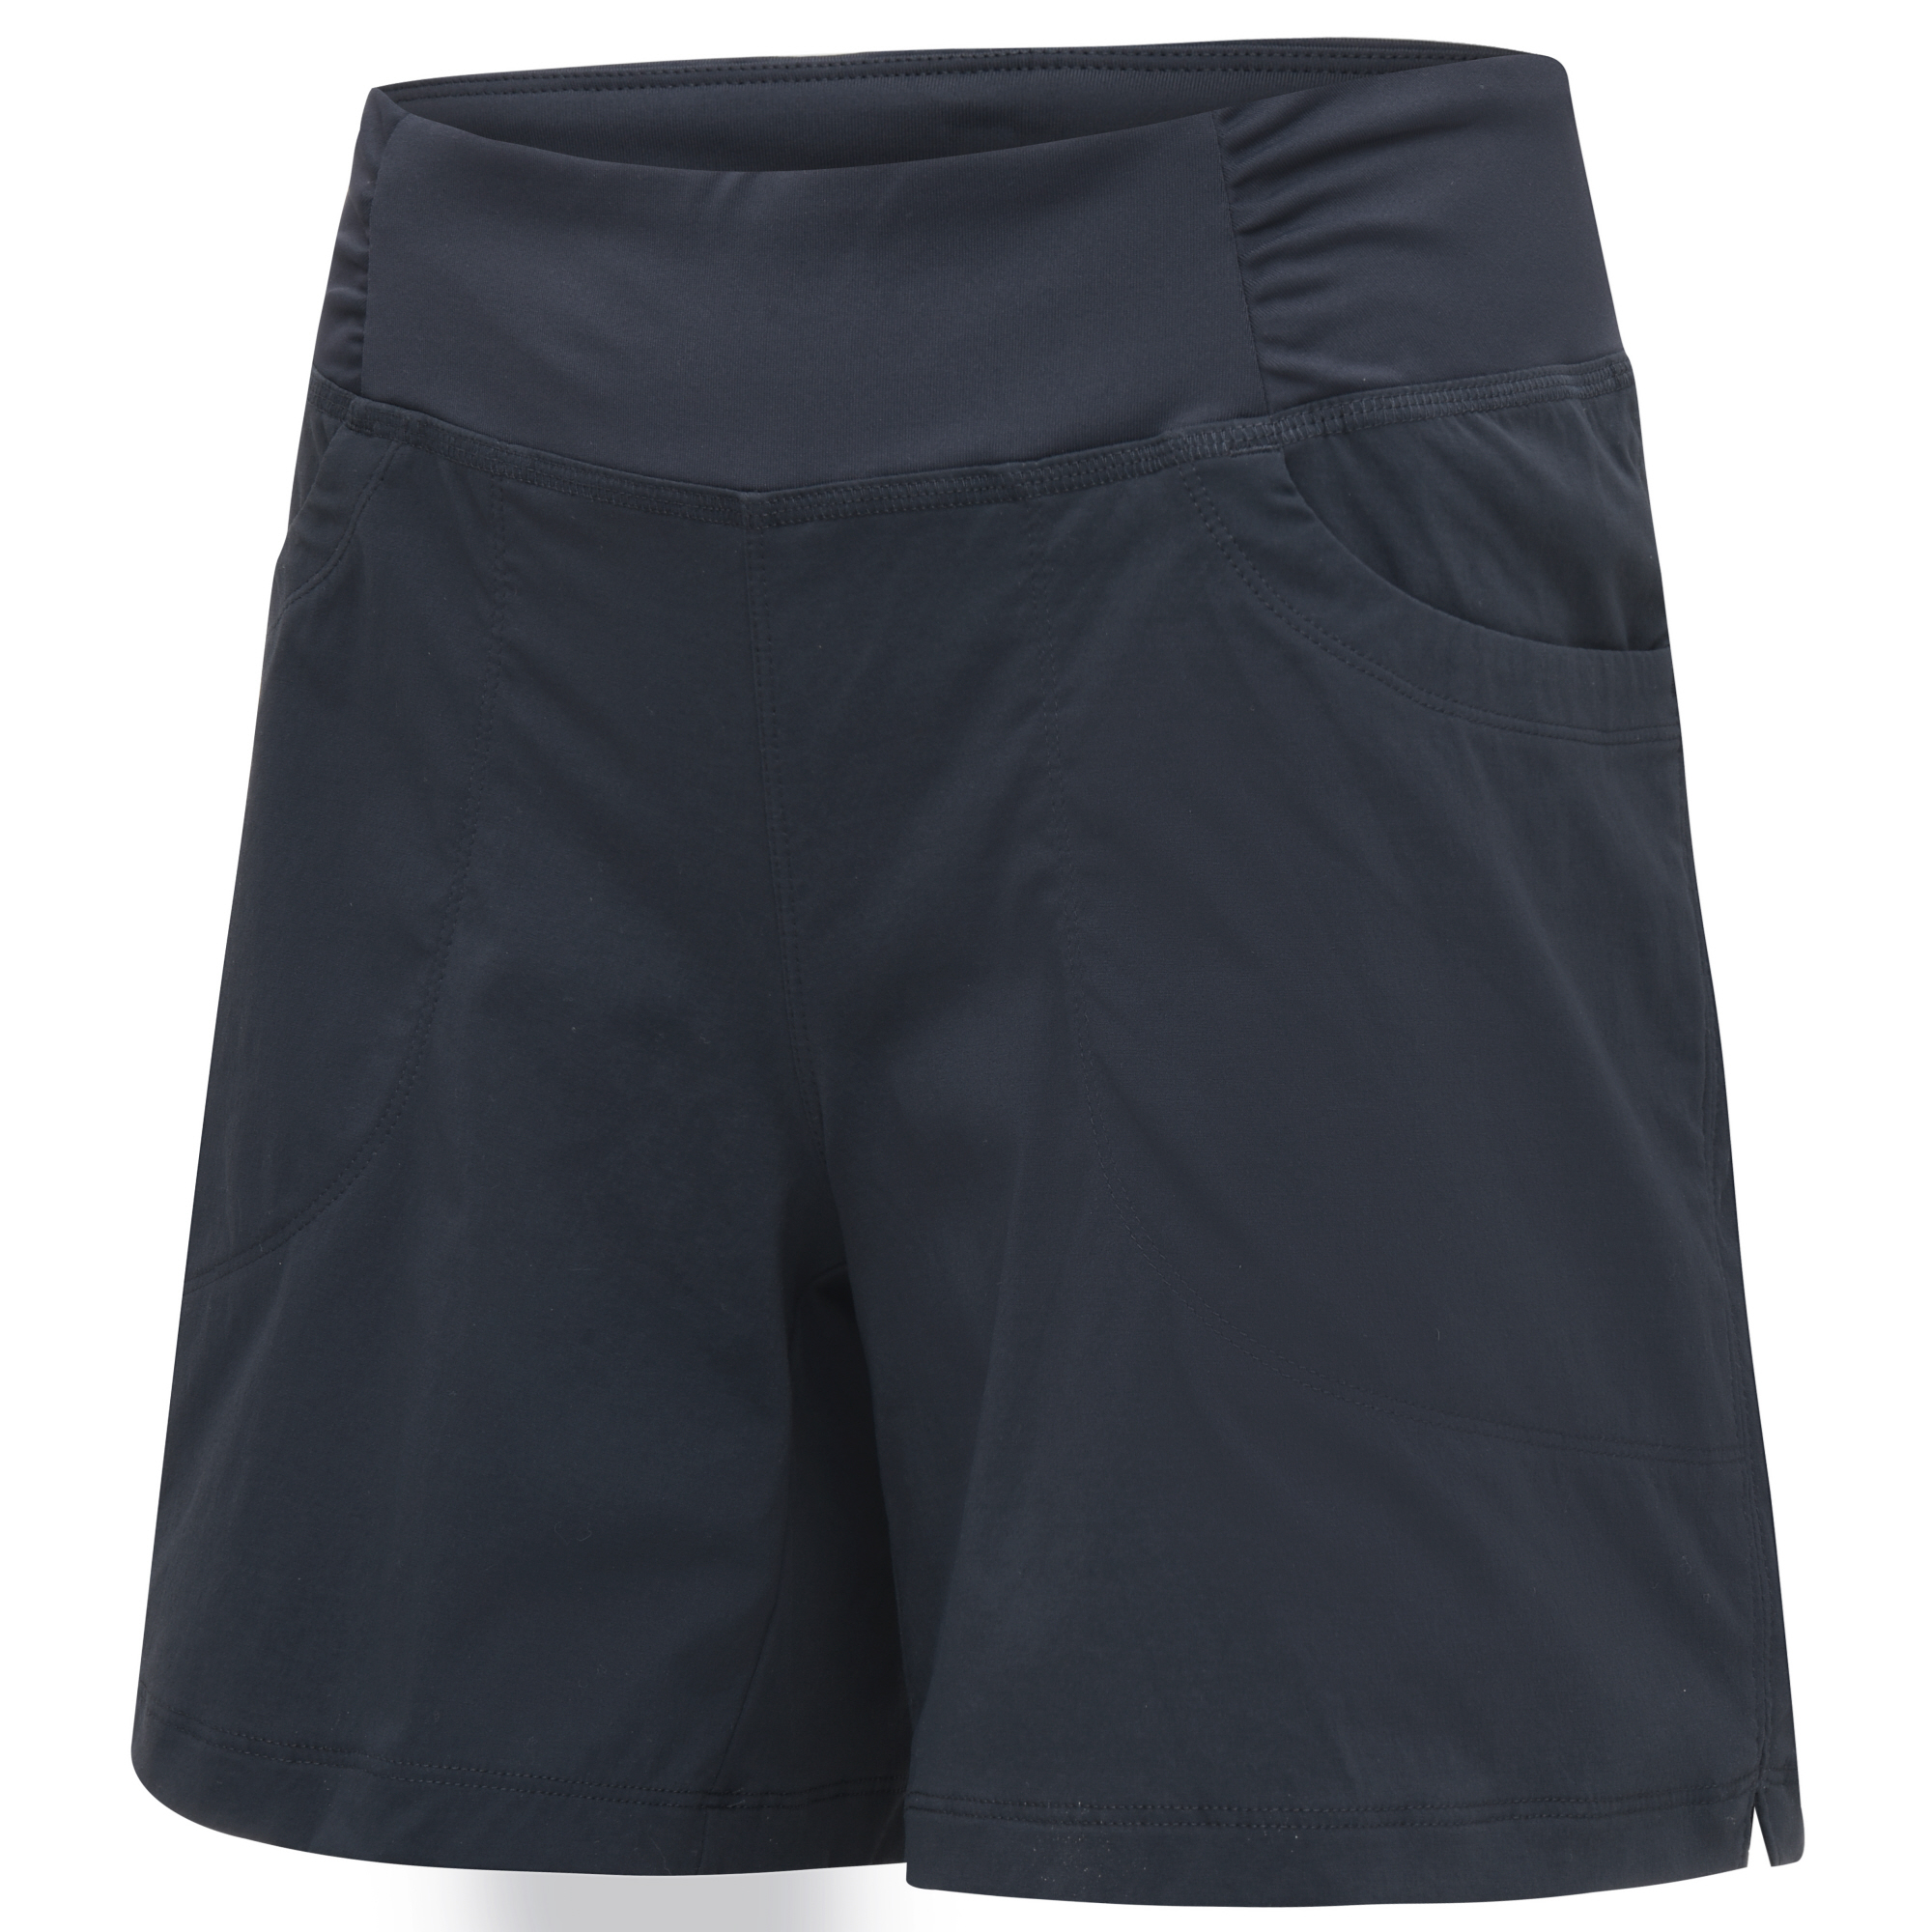 Mountain Hardwear Women's Dynama™ Short | Trousers